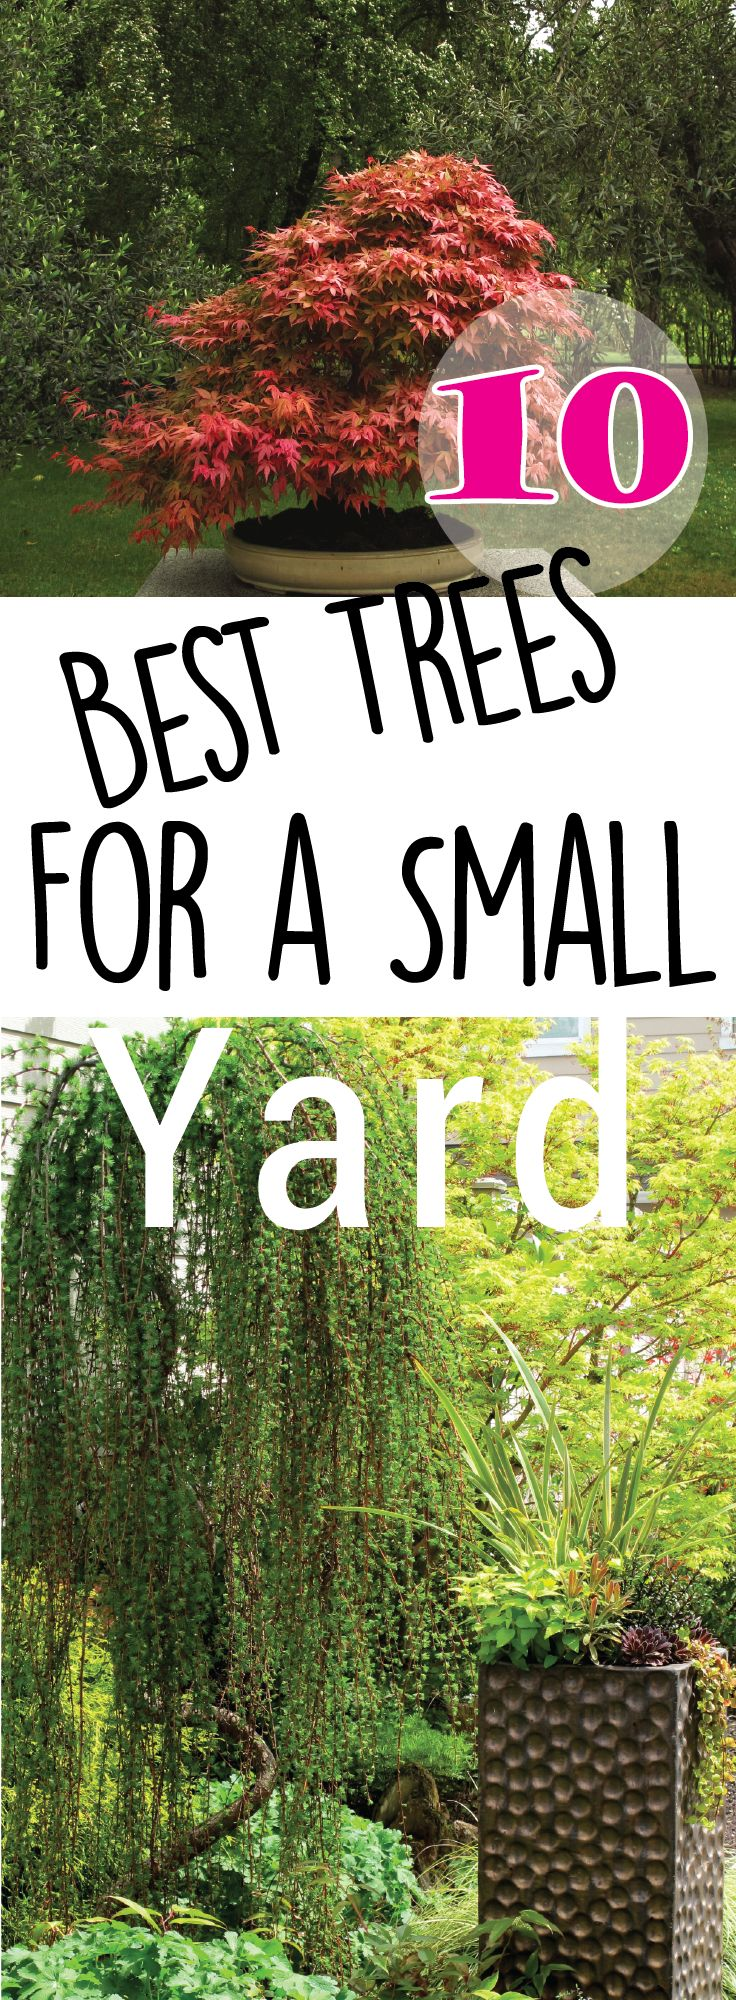 best trees images on pinterest plants gardening and landscaping